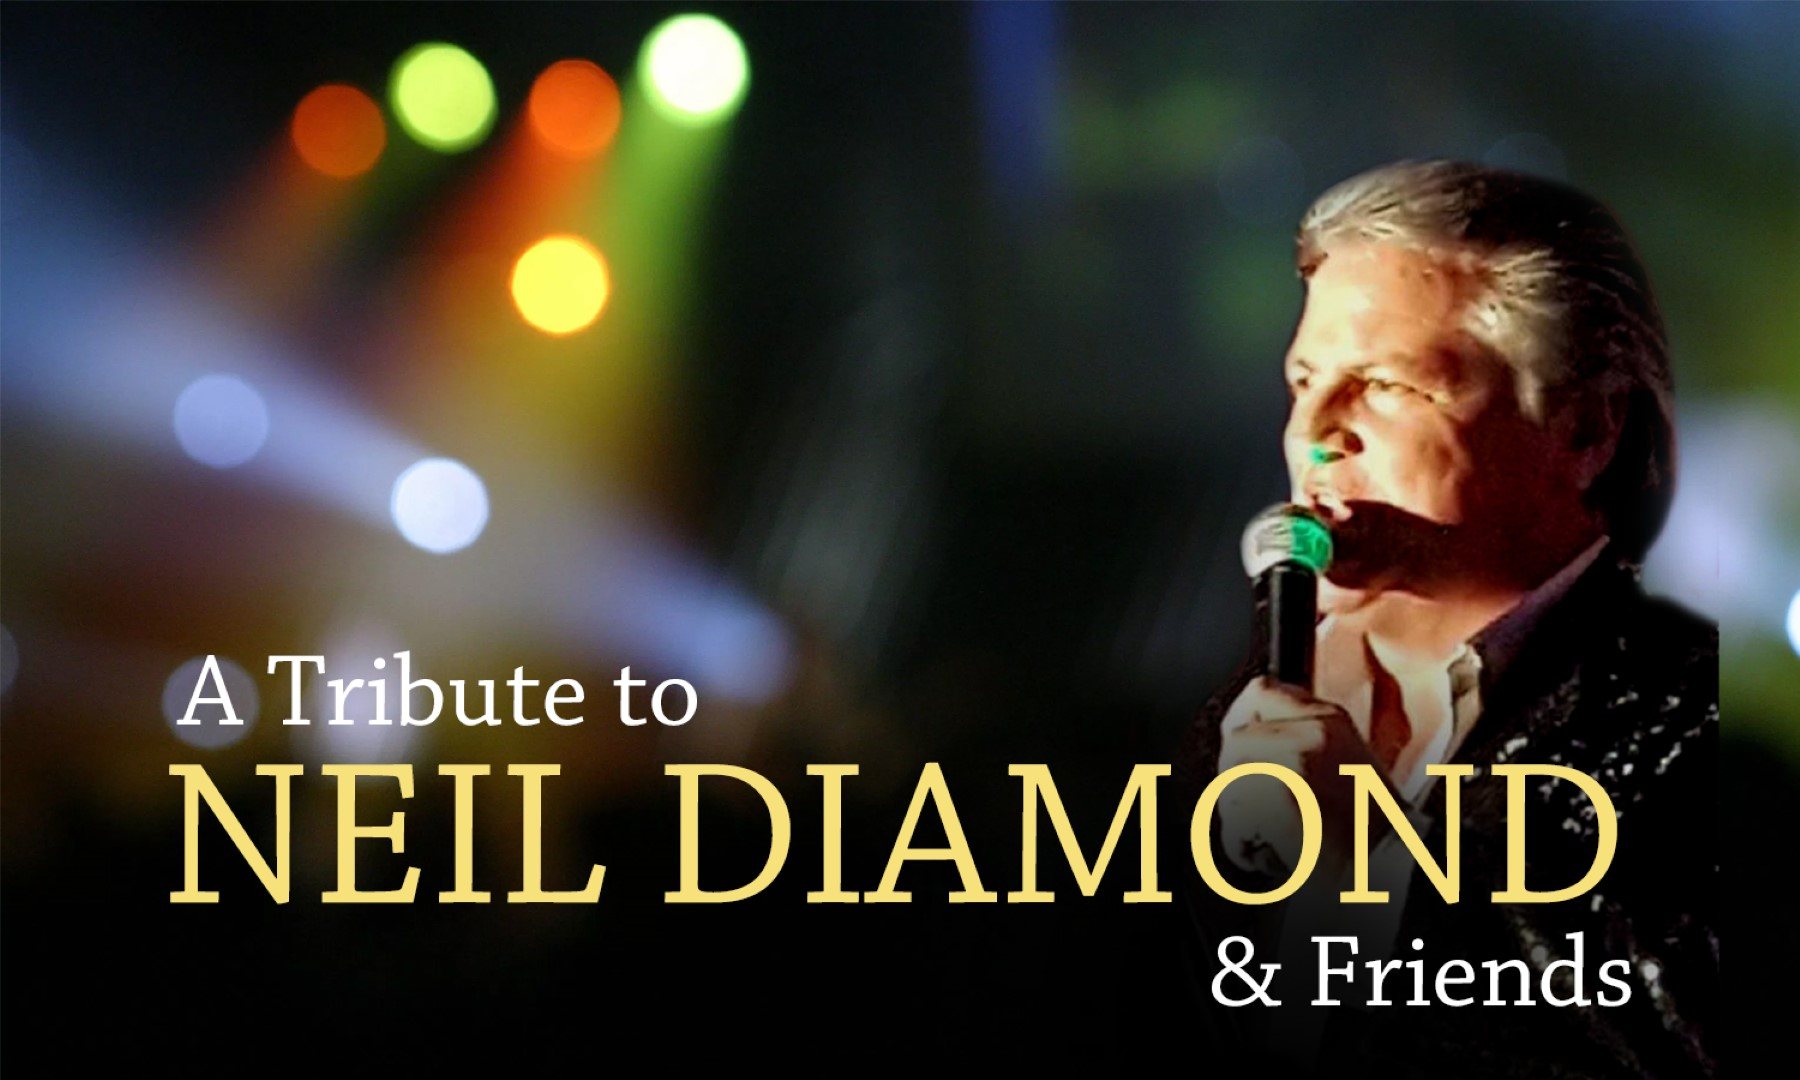 A Tribute to Neil Diamond & Friends banner image